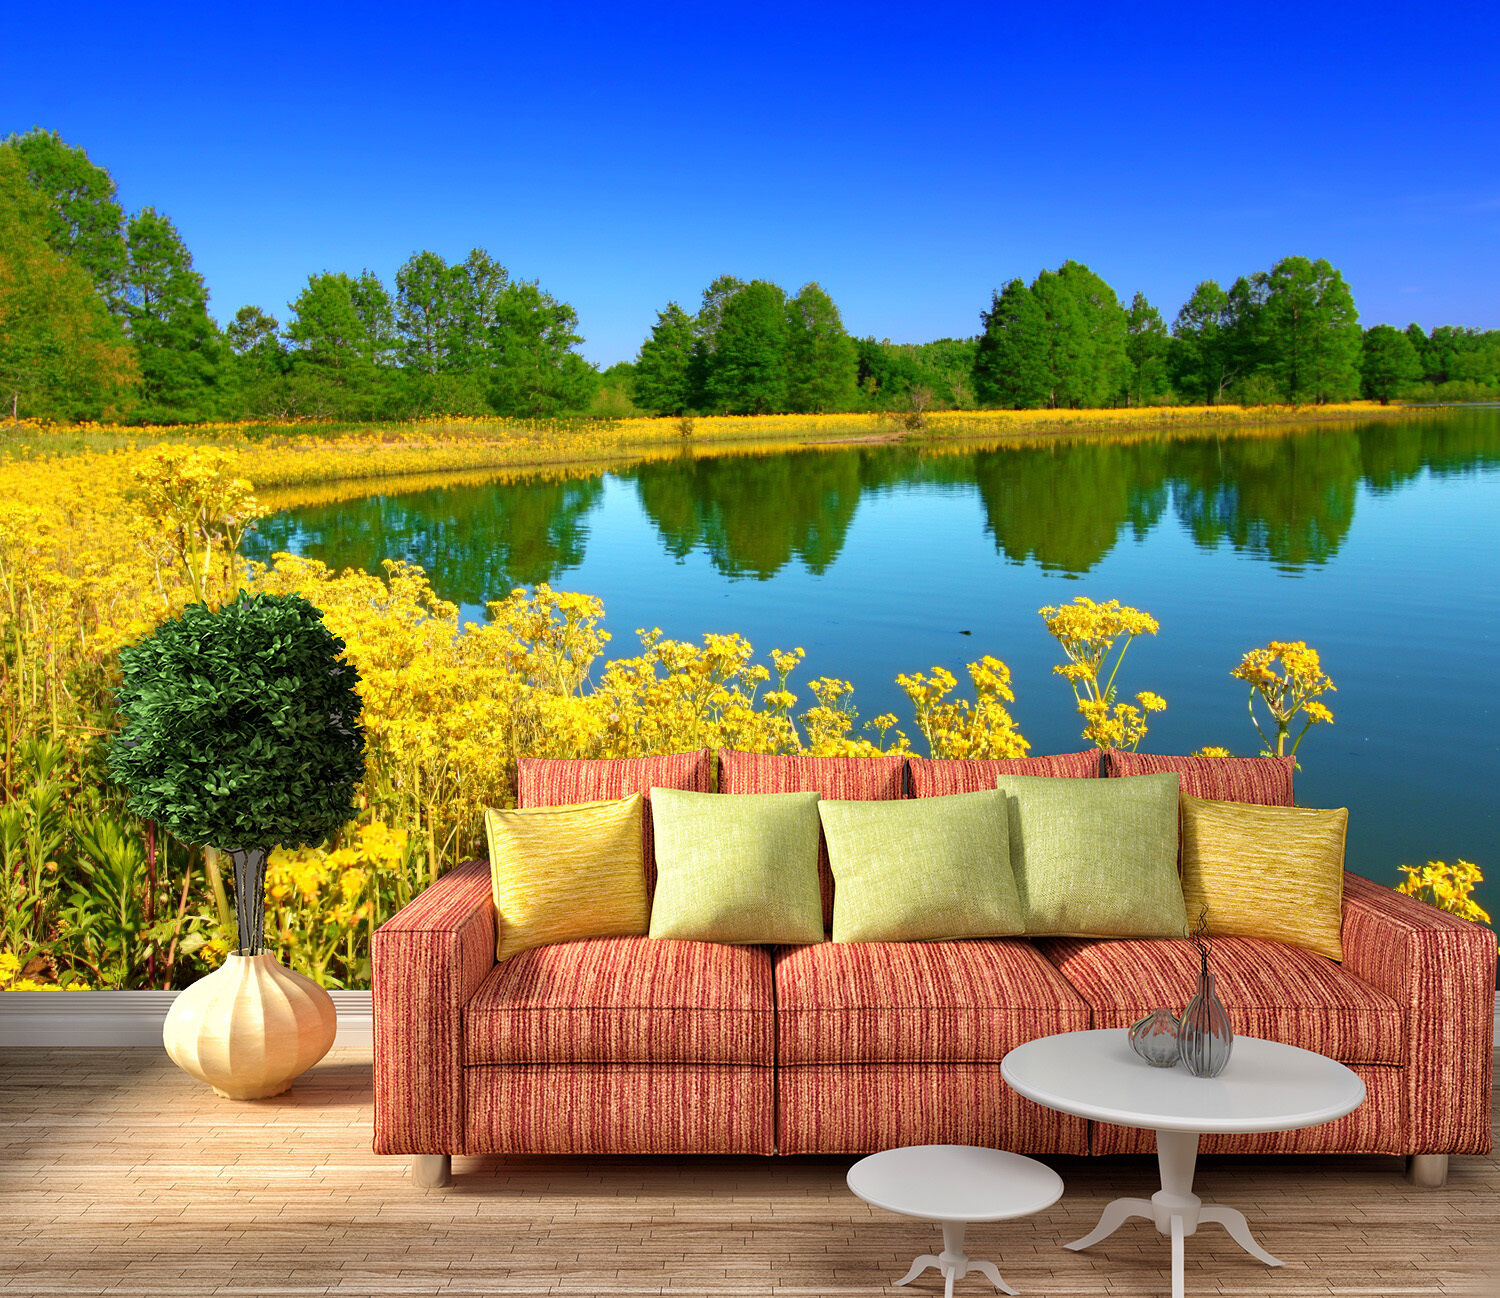 3D bluee sky river 342 Wall Paper Wall Print Decal Wall Deco Indoor Wall Murals